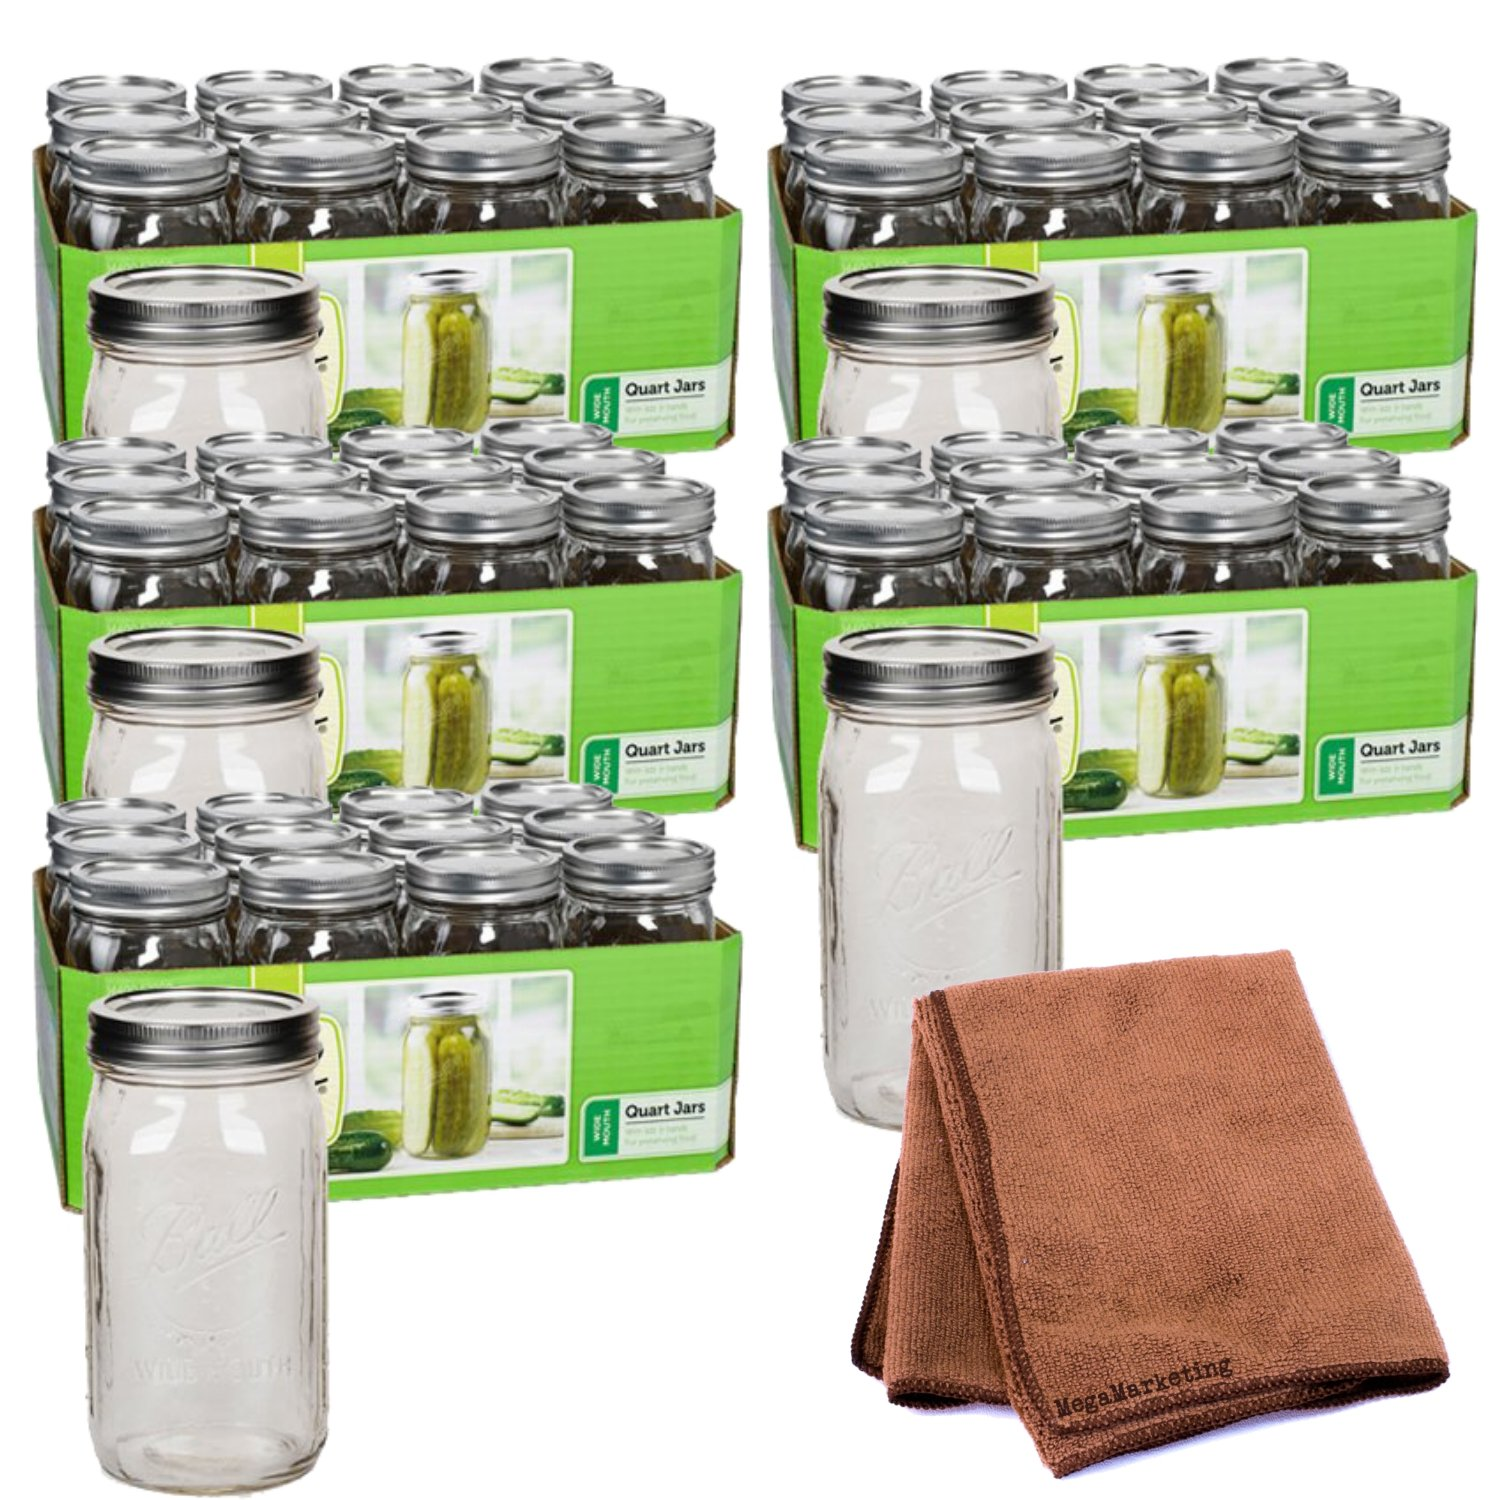 Ball Quart Jar, Wide Mouth, Set of 12 (pack of 5) with Cleaning Cloth